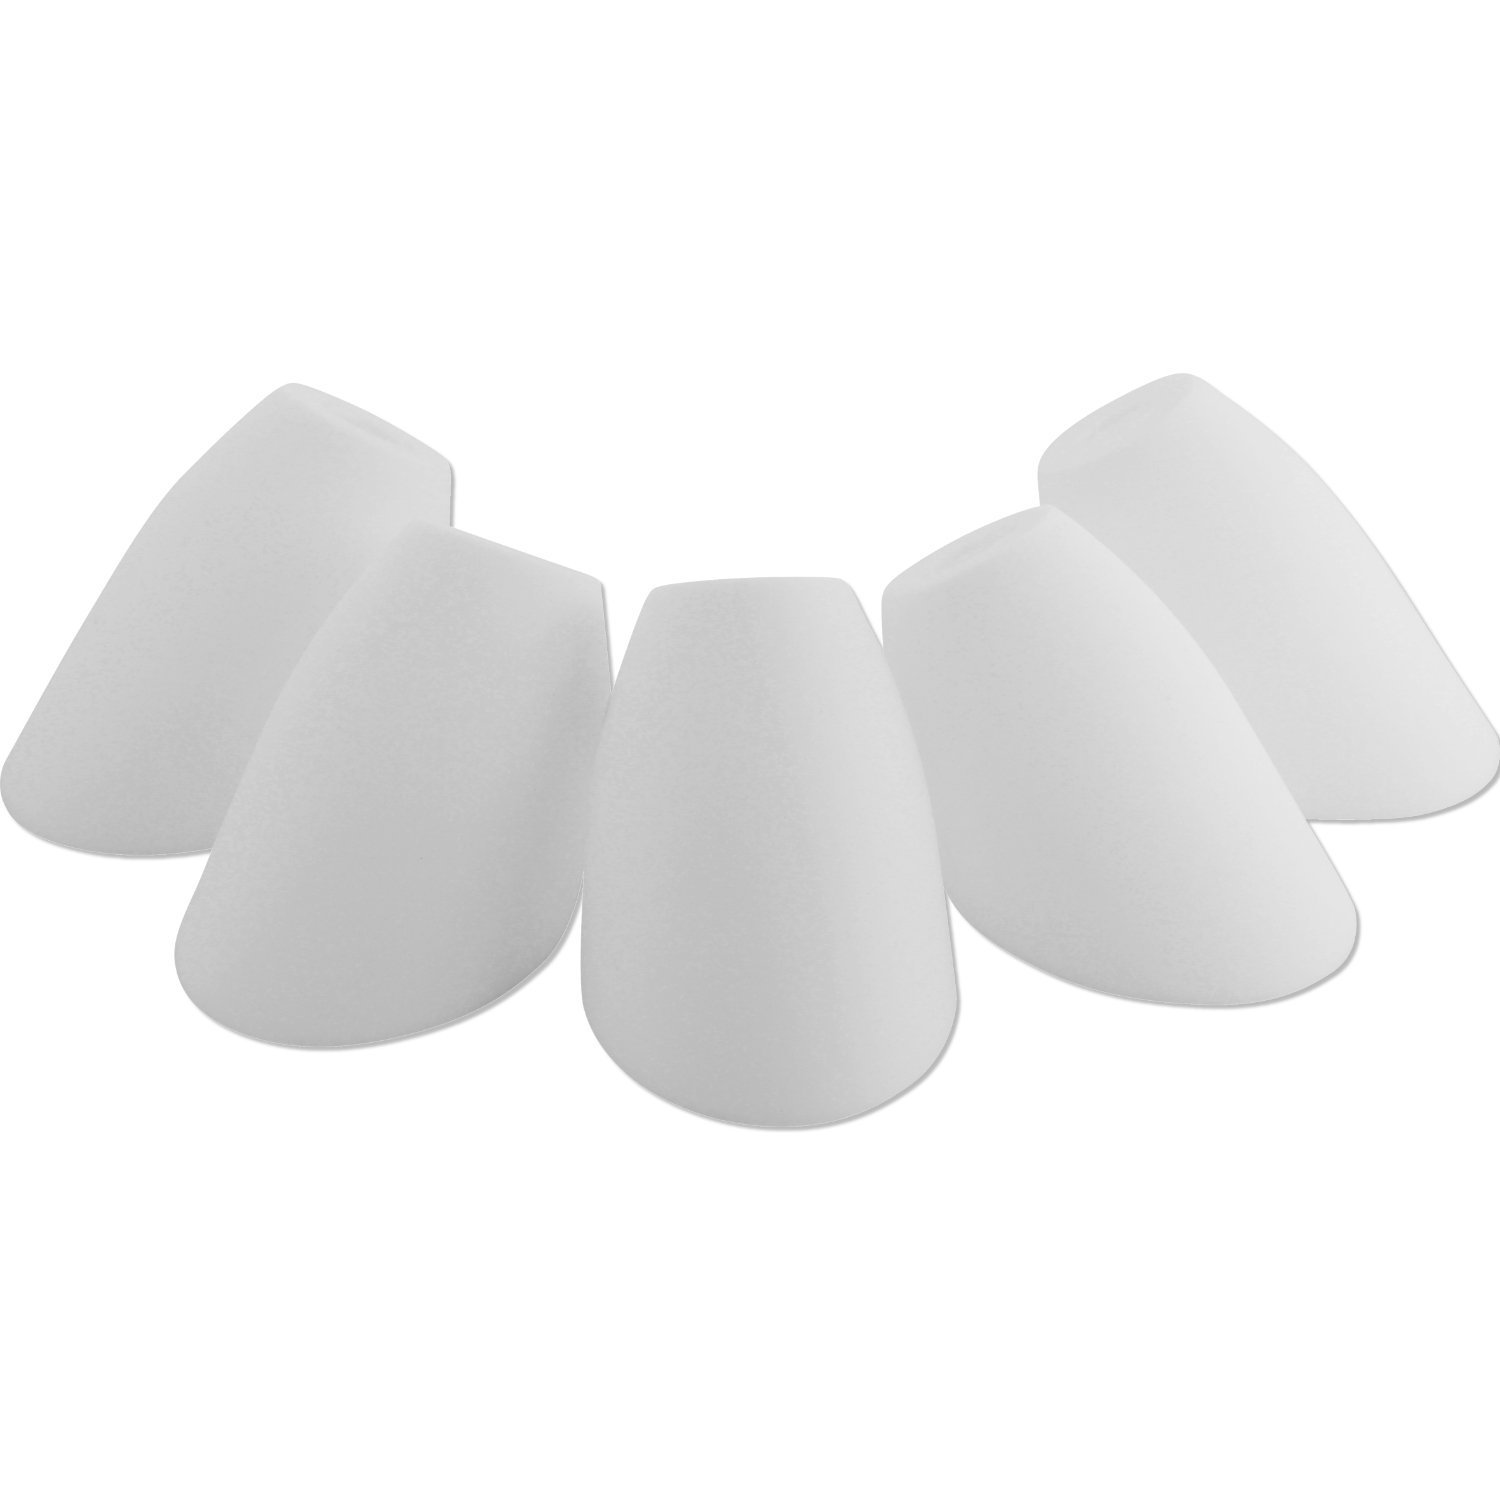 Amazon replacement shades for candelabra base only base hole amazon replacement shades for candelabra base only base hole dimension 083 inches 21 mm white acrylic shades model 16197 98 set of 5 home aloadofball Gallery